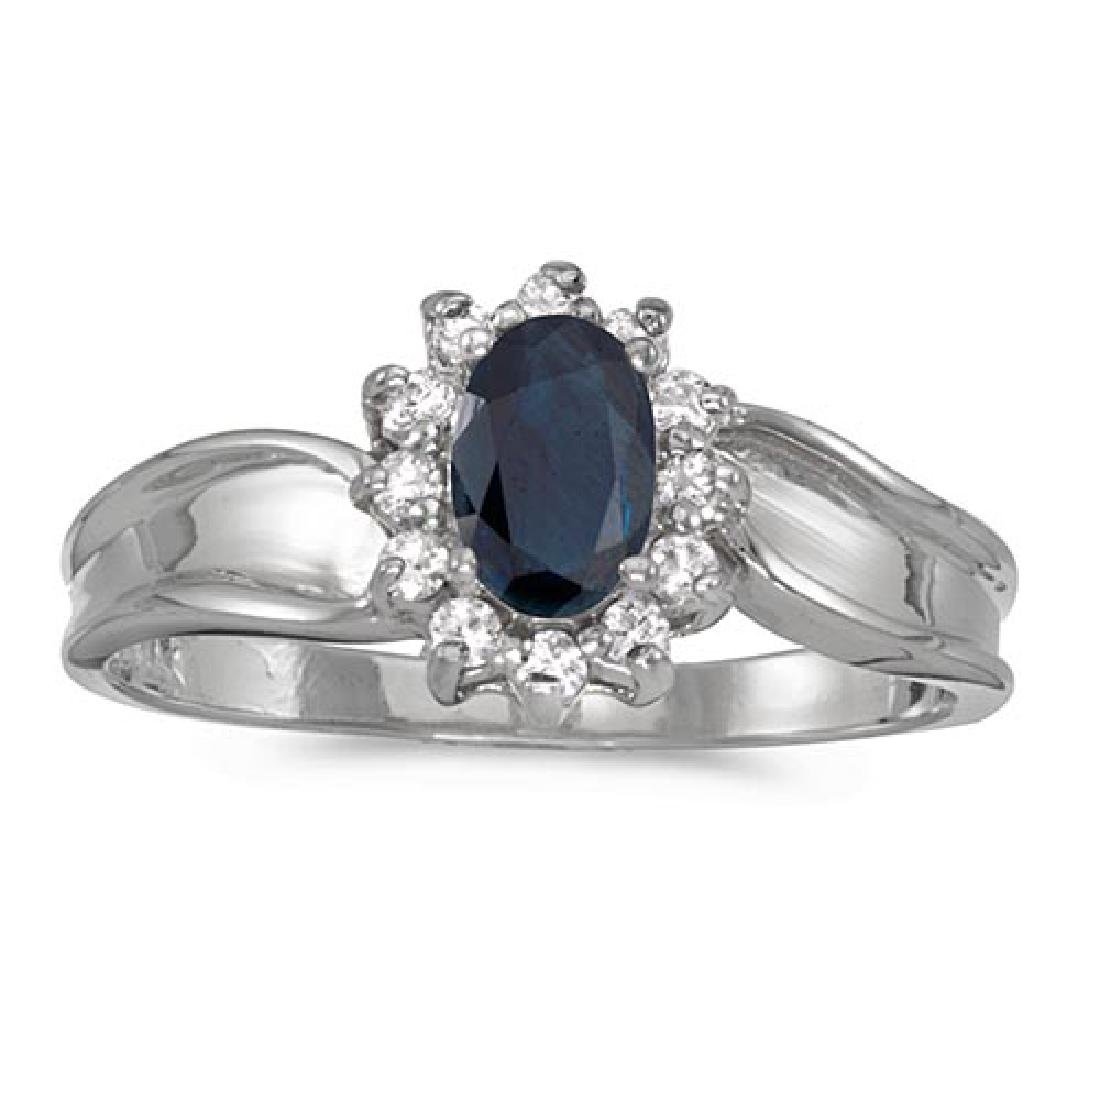 Certified 14k White Gold Oval Sapphire And Diamond Ring